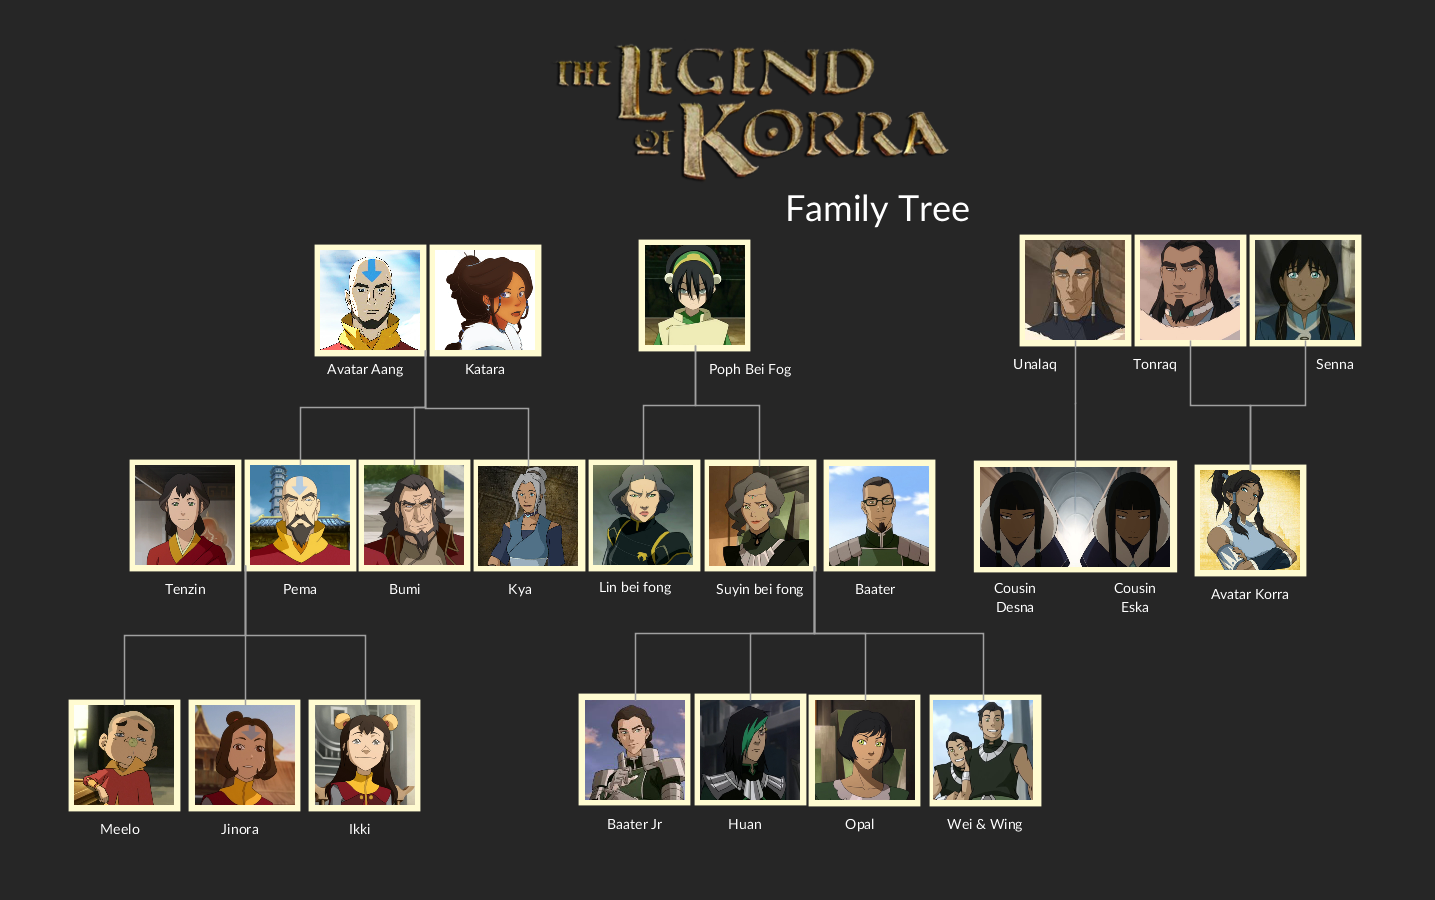 The Family Tree Of The Popular Animated Tv Series The Legend Of Korra  Derived From The Original